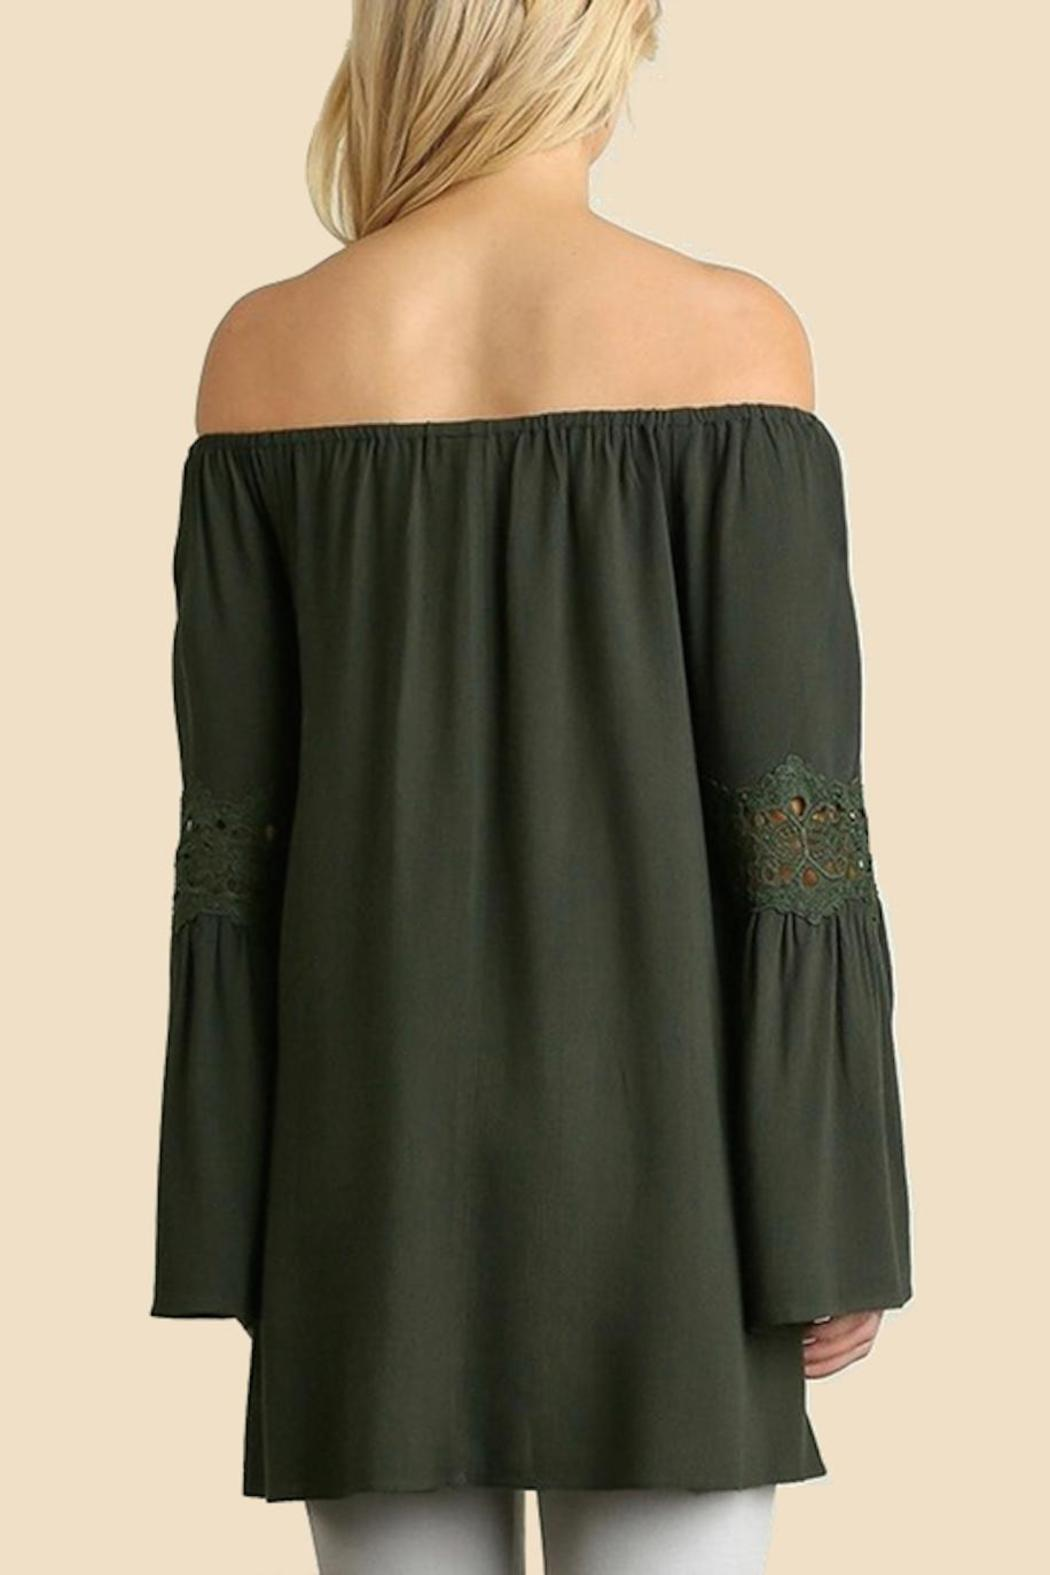 People Outfitter Off Shoulder Top - Side Cropped Image